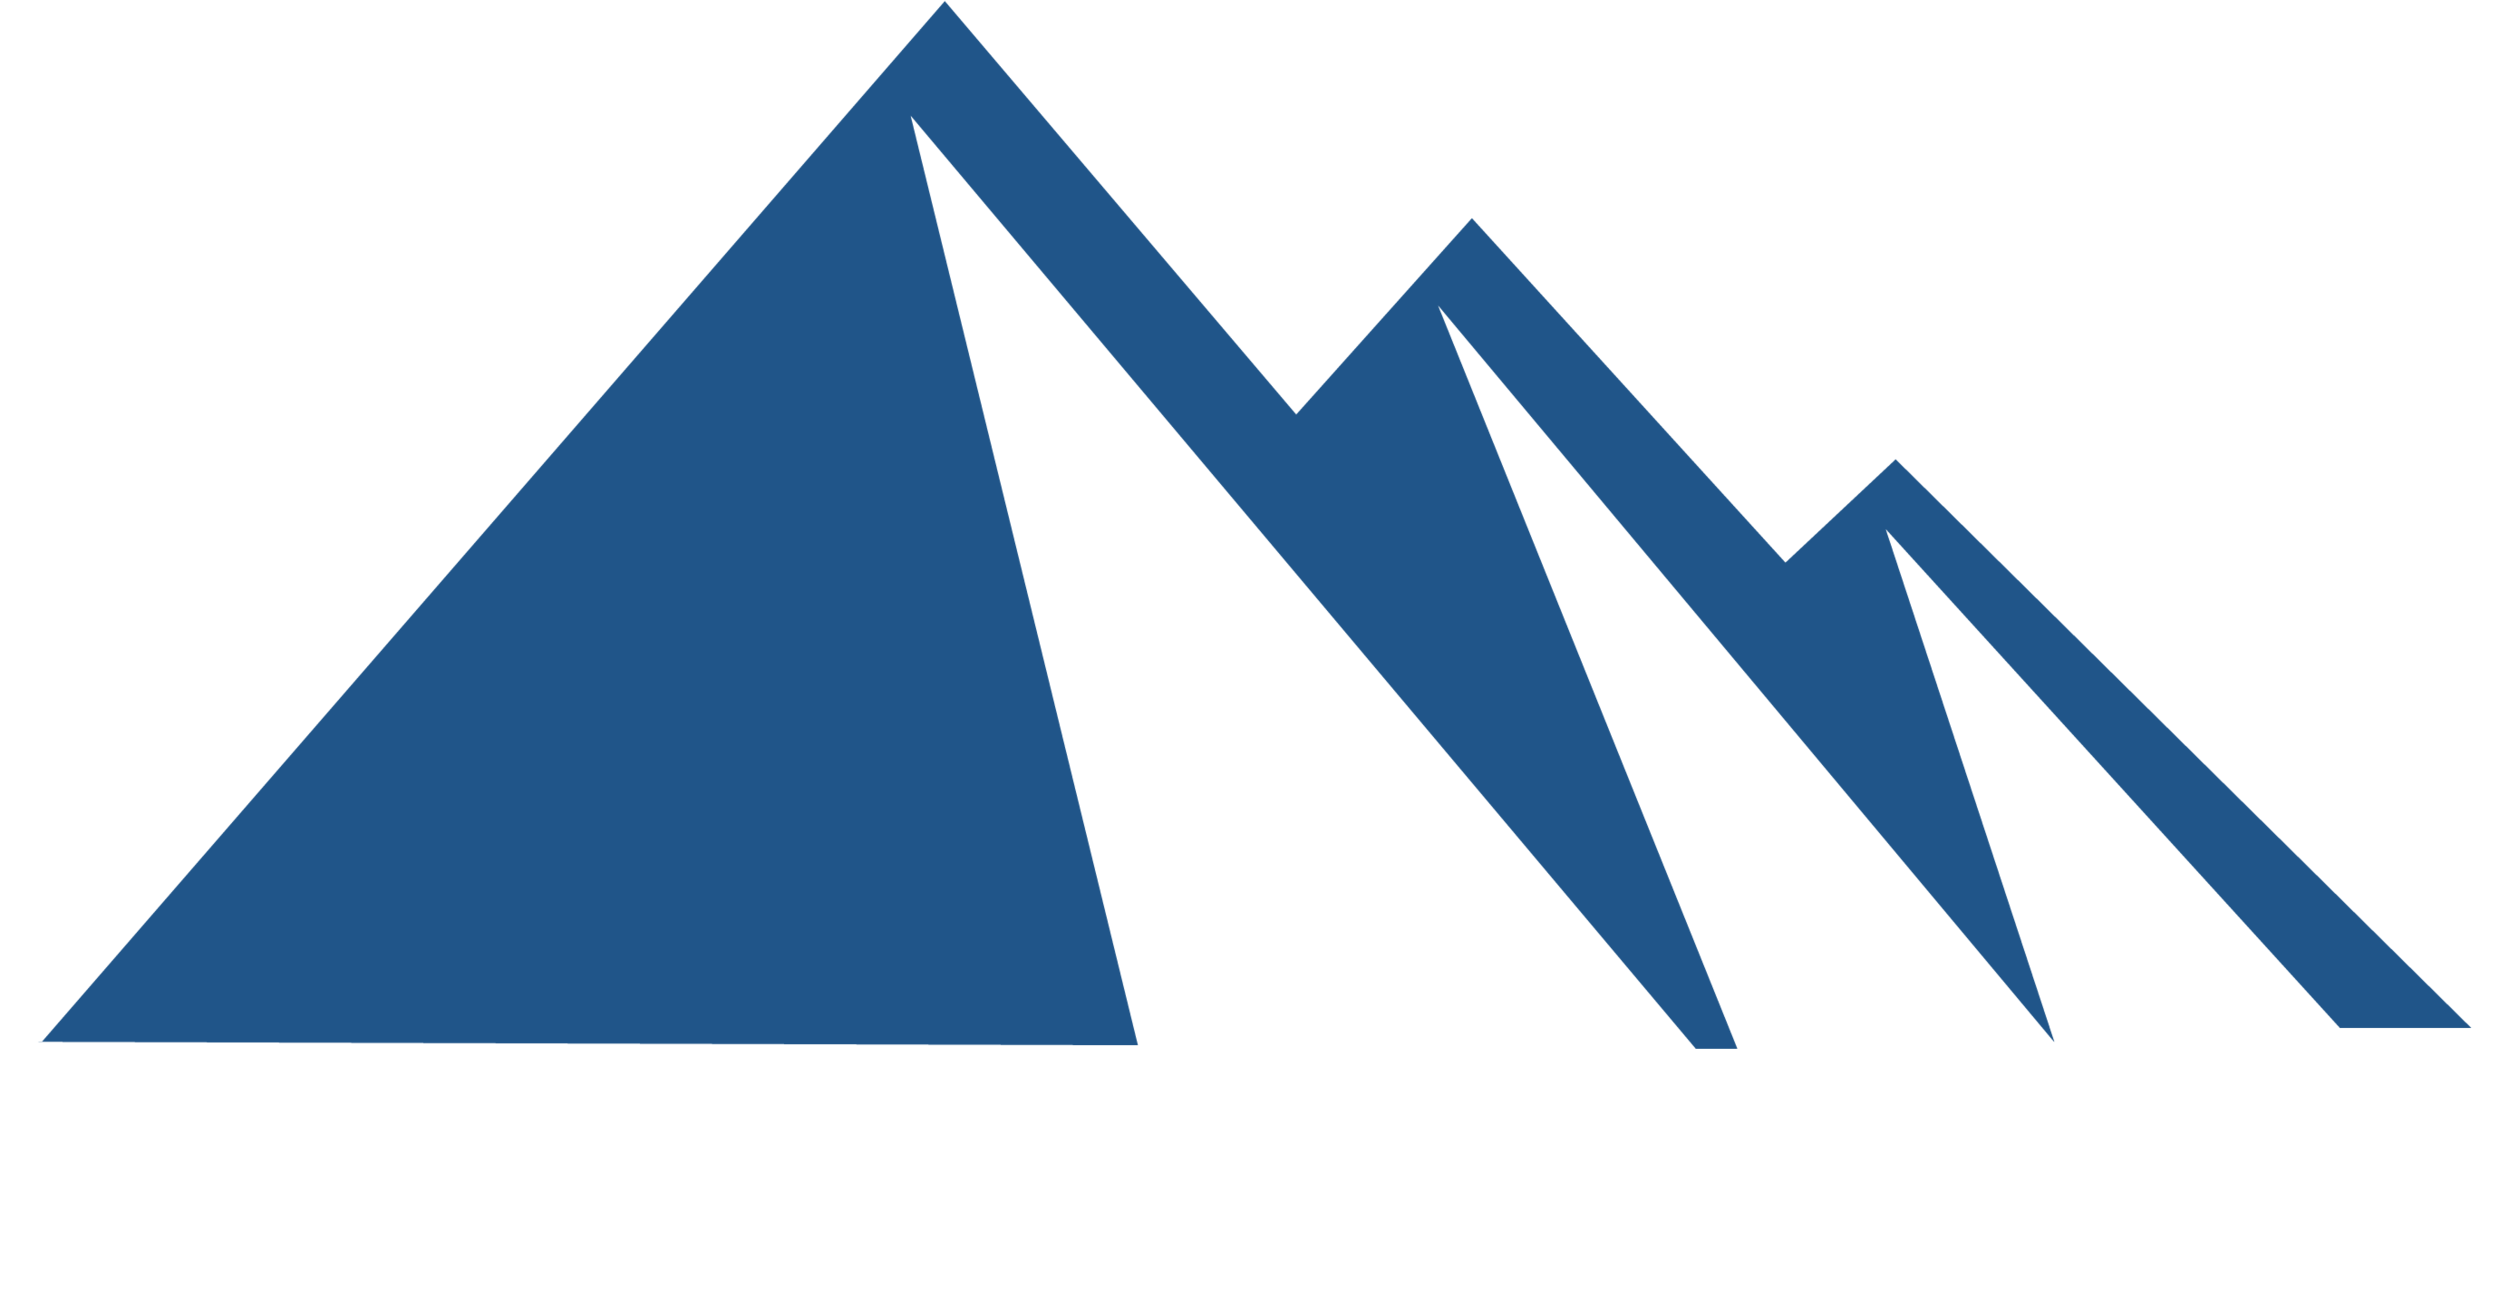 © Blue Ridge Builders Inc 2019